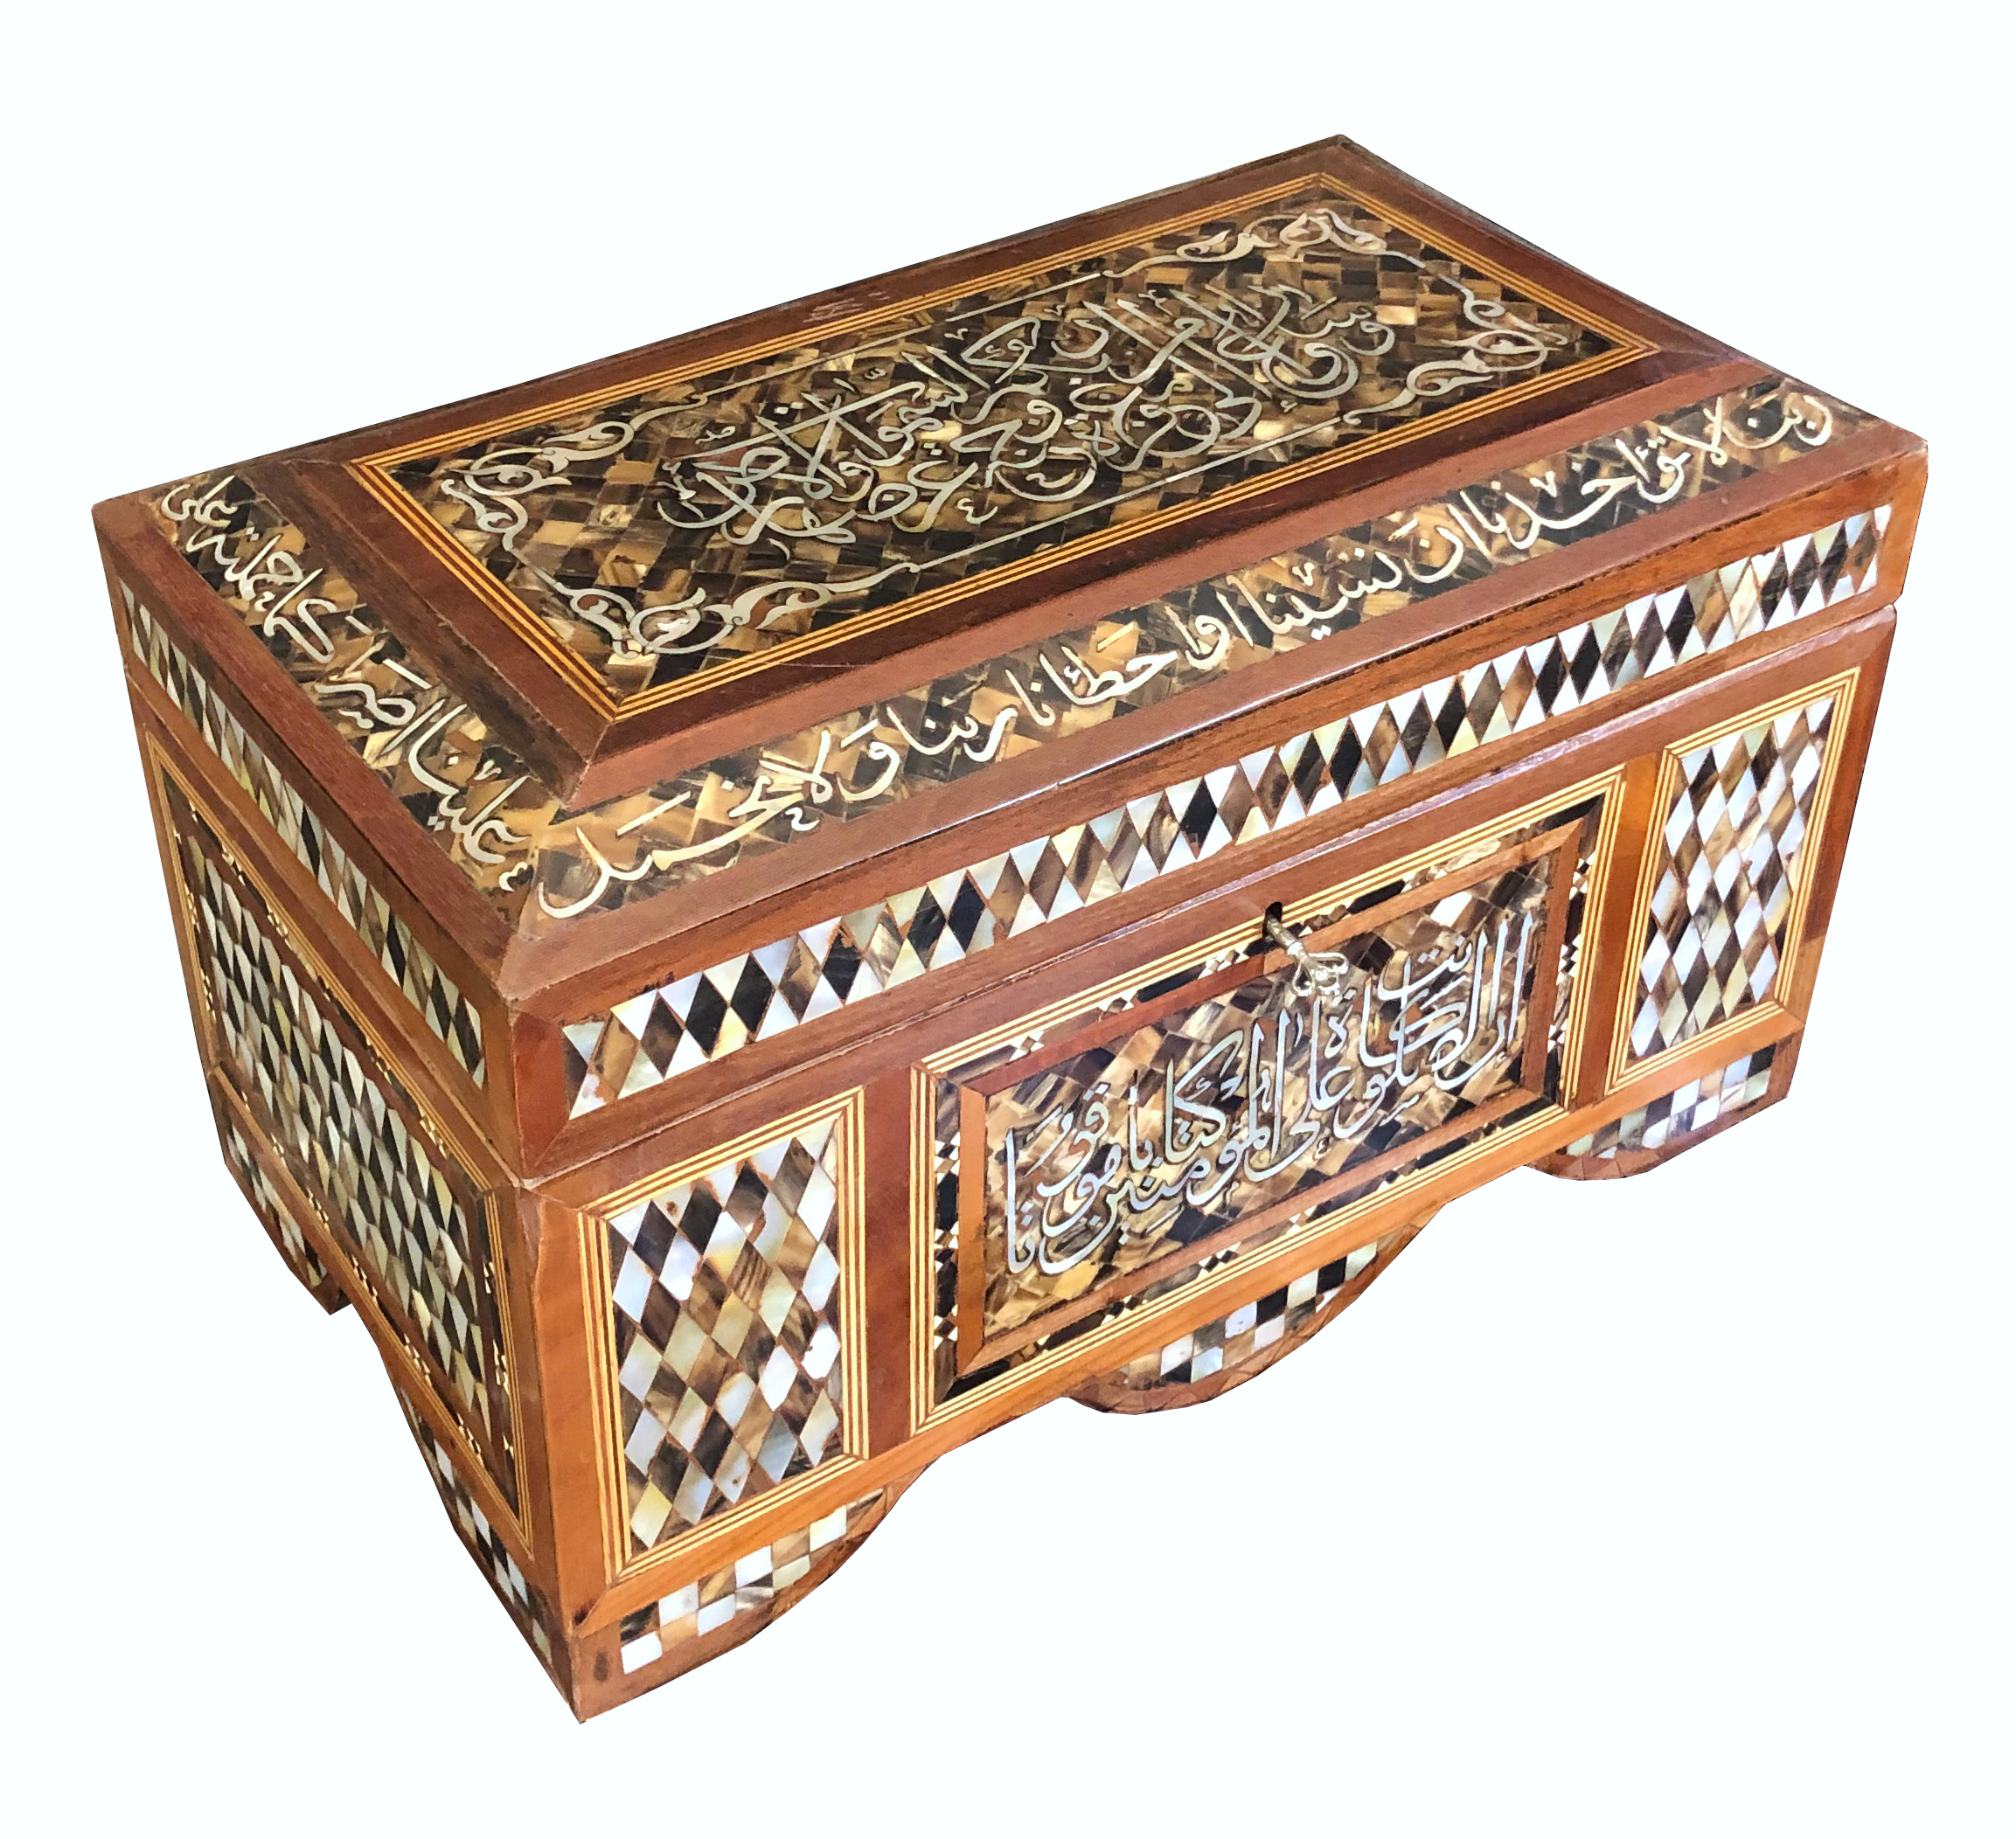 Antique mother of pearl inlaid chest